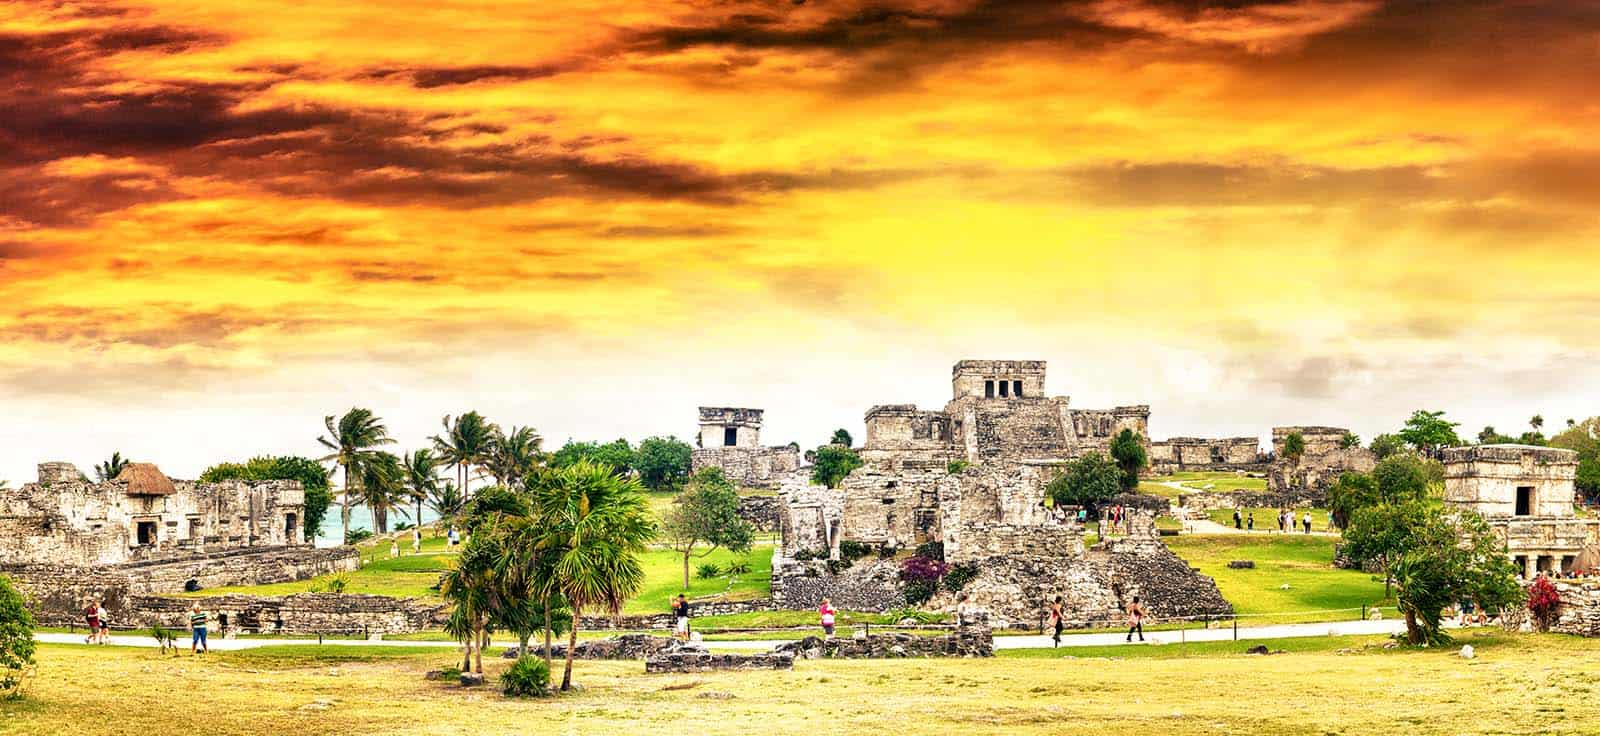 Things to do in Tulum, Mexico: Excursion to the Mayan ruins of Tulum